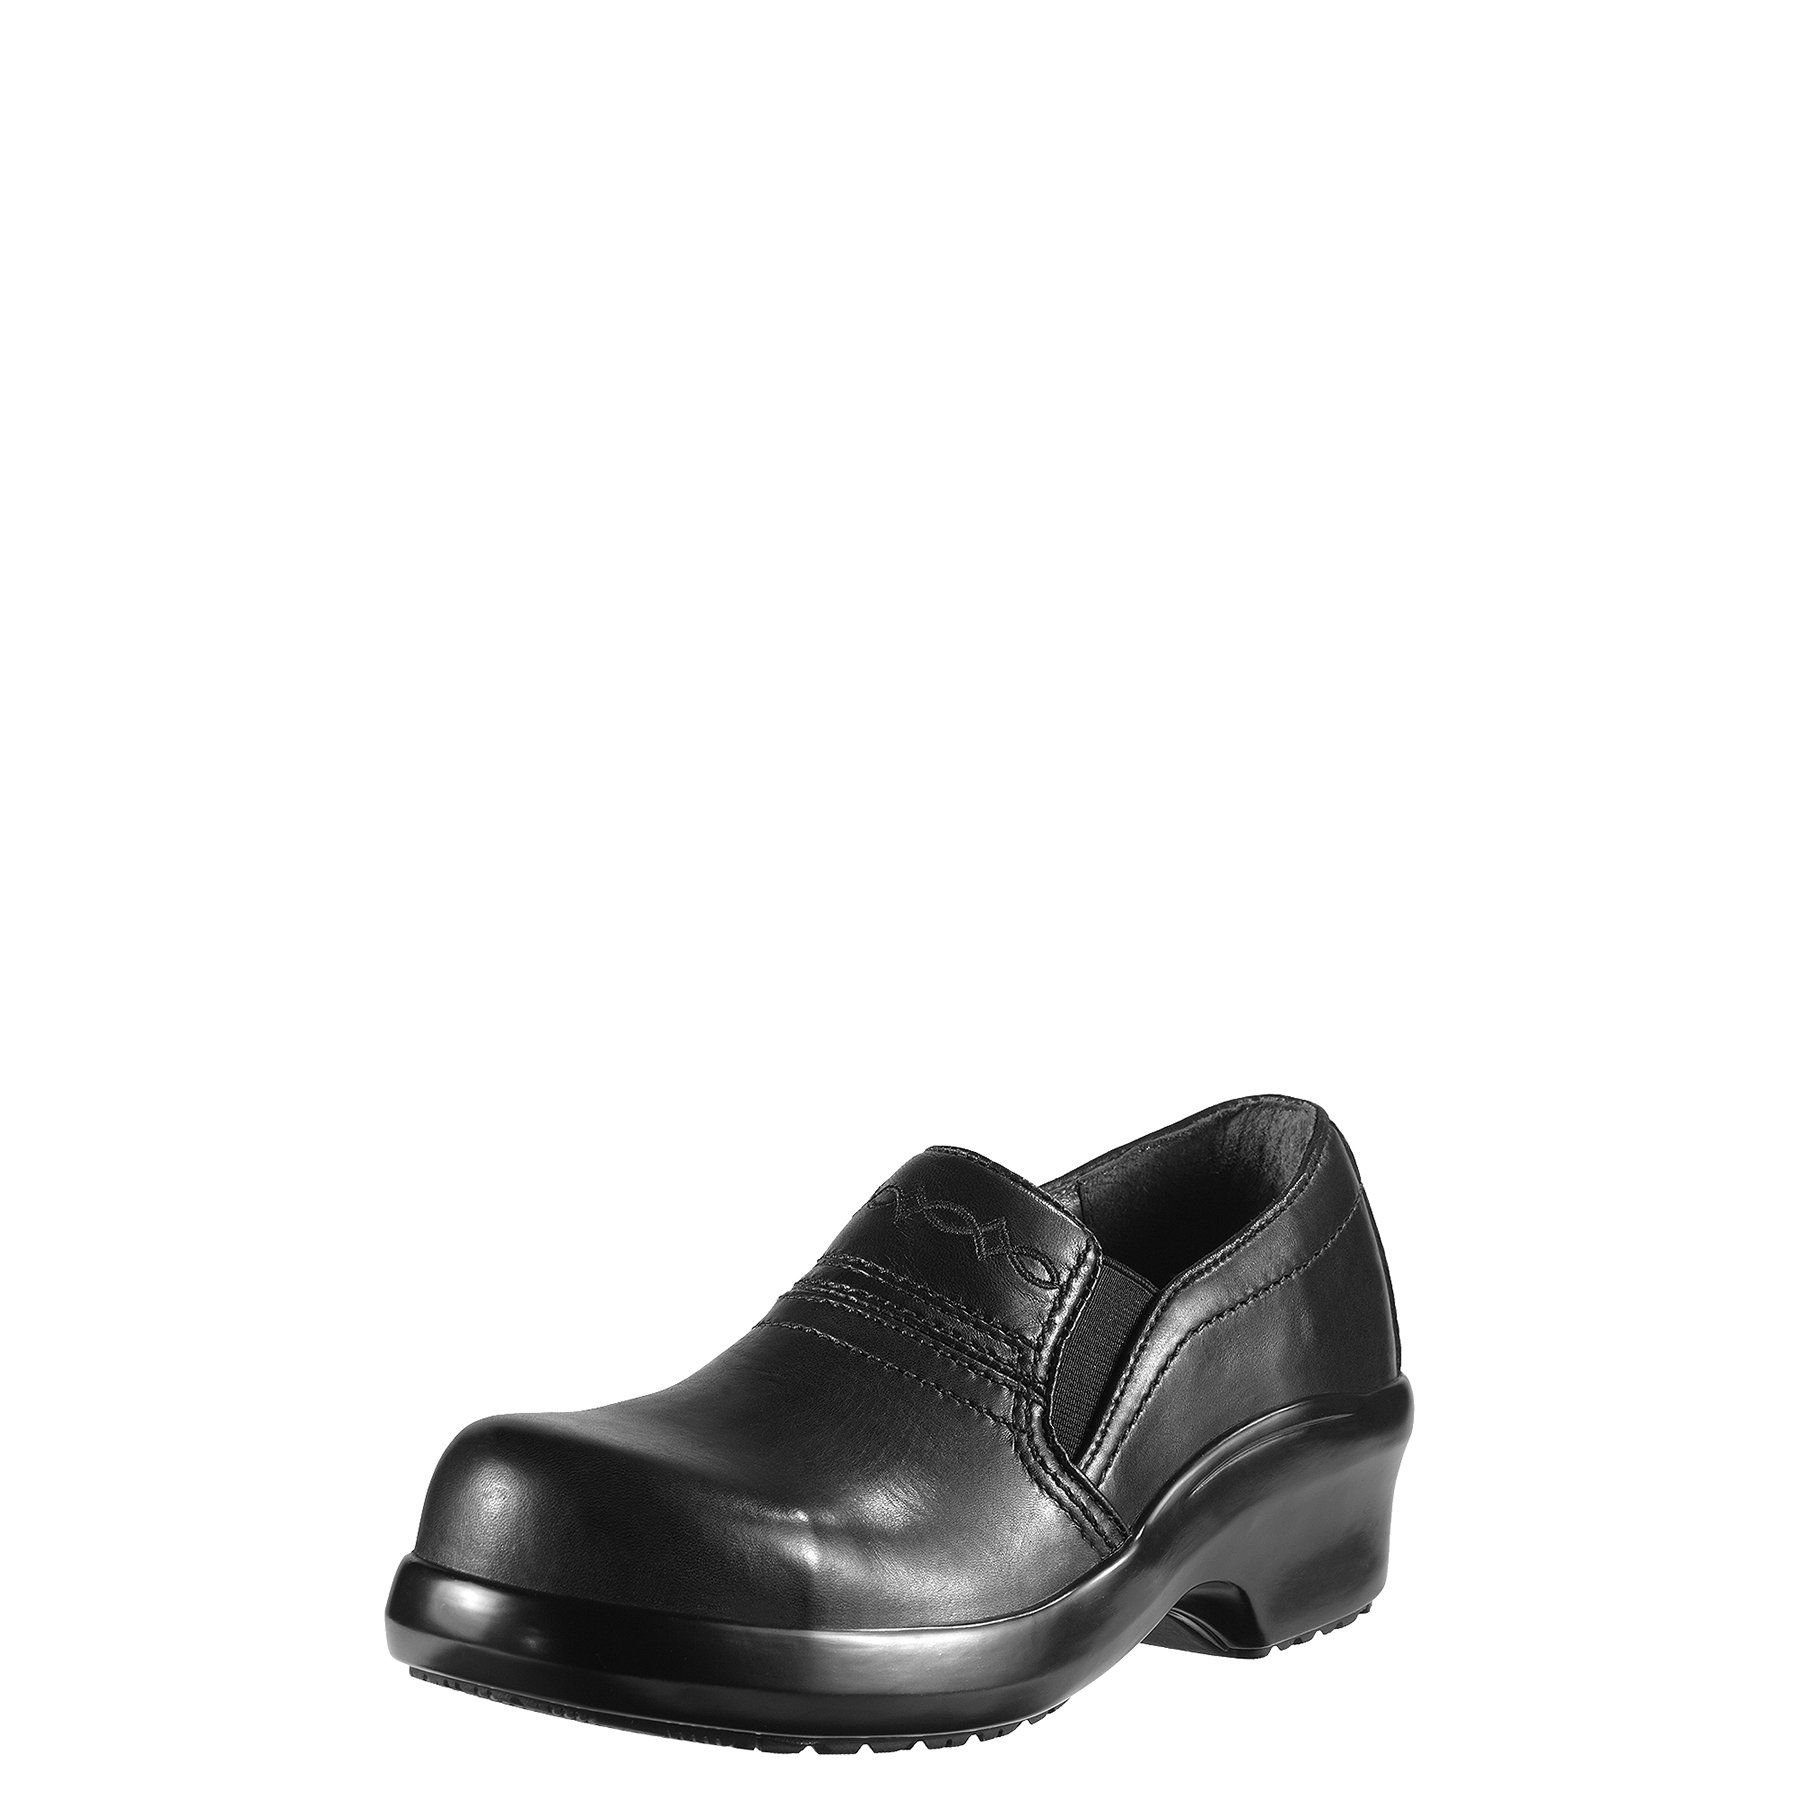 Ariat Women's Expert Static Dissipative Safety Clog, Black, 8.5 W US